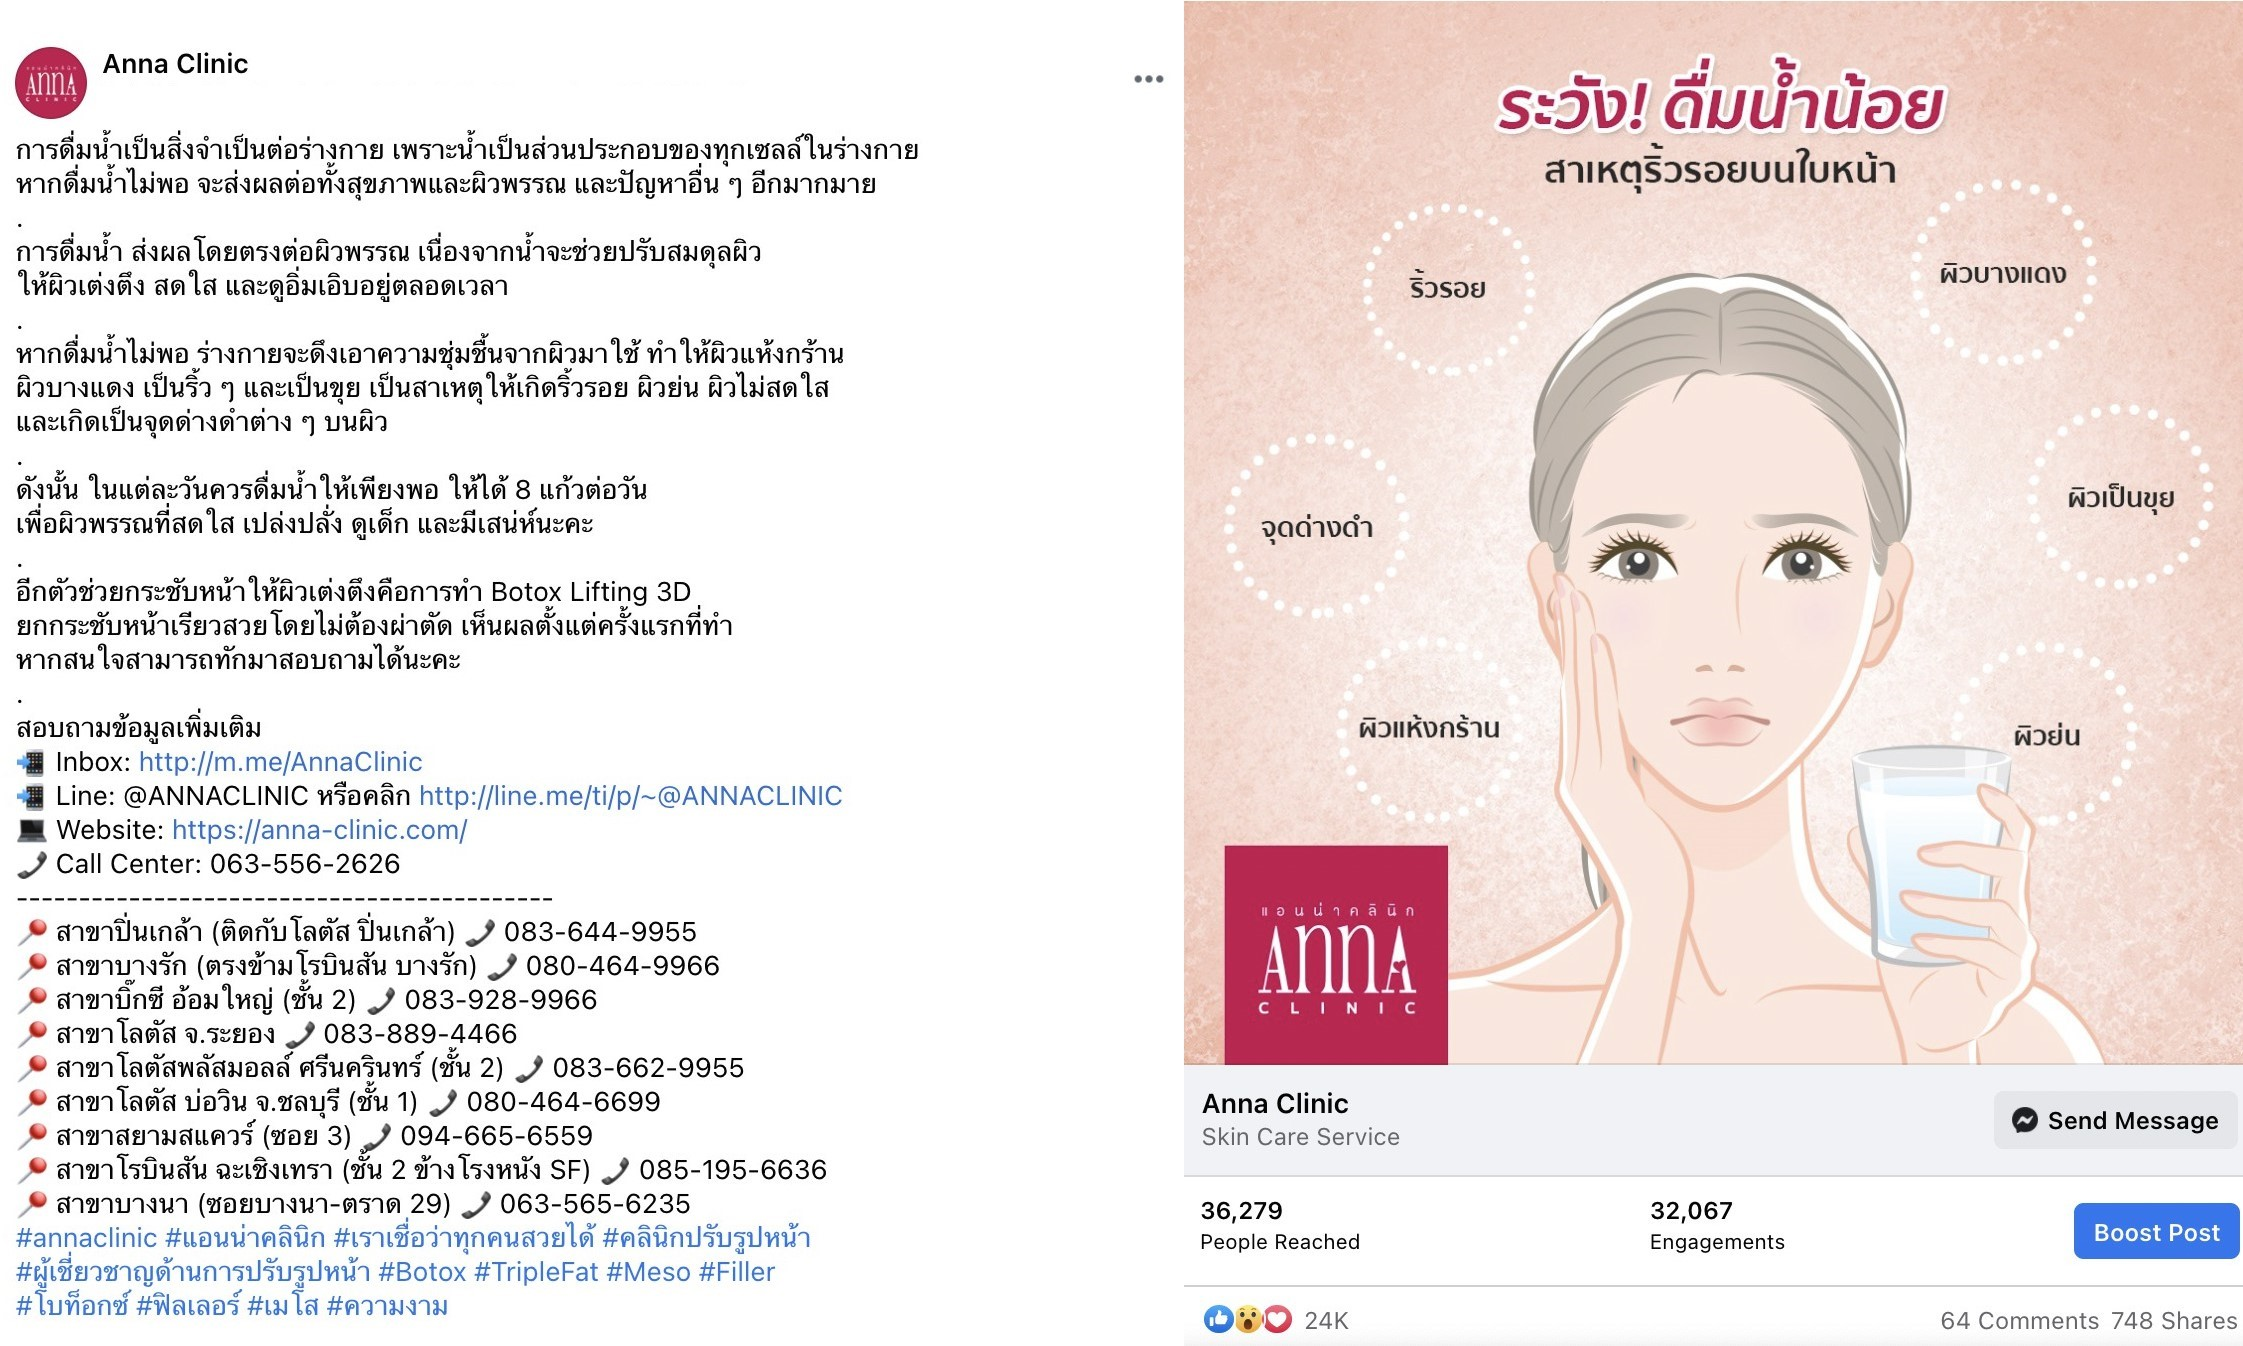 Screenshot of online content with digital marketing KPIs for beauty clinic 2